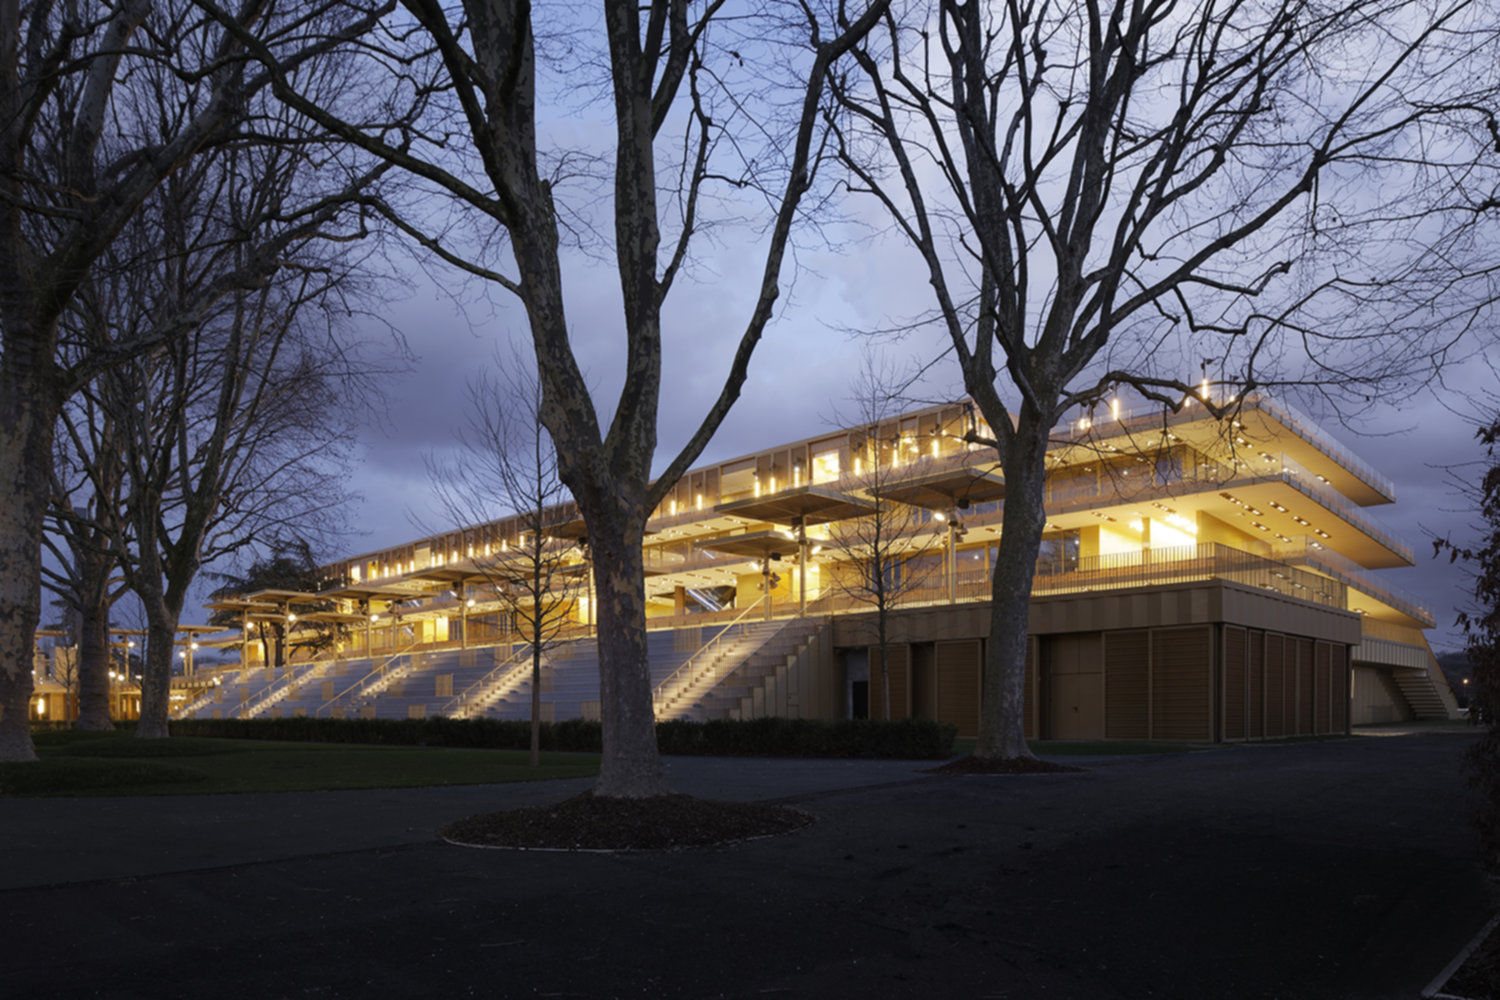 Le nouvel hippodrome Paris Longchamp de Dominique Perrault Architecture